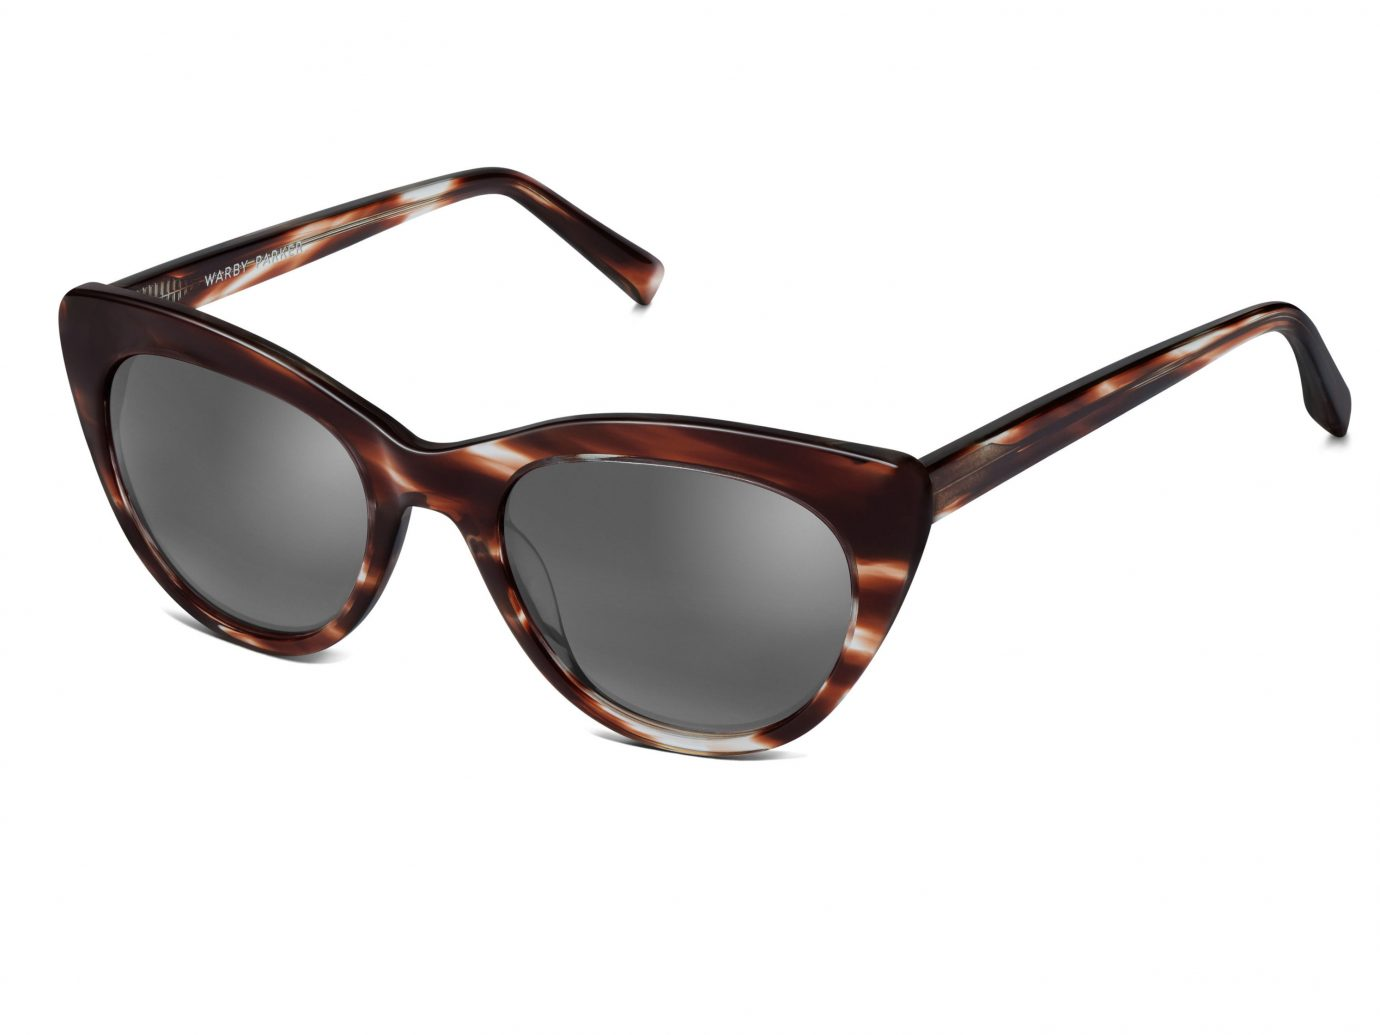 Style + Design spectacles sunglasses eyewear accessory glasses vision care brown goggles fashion accessory